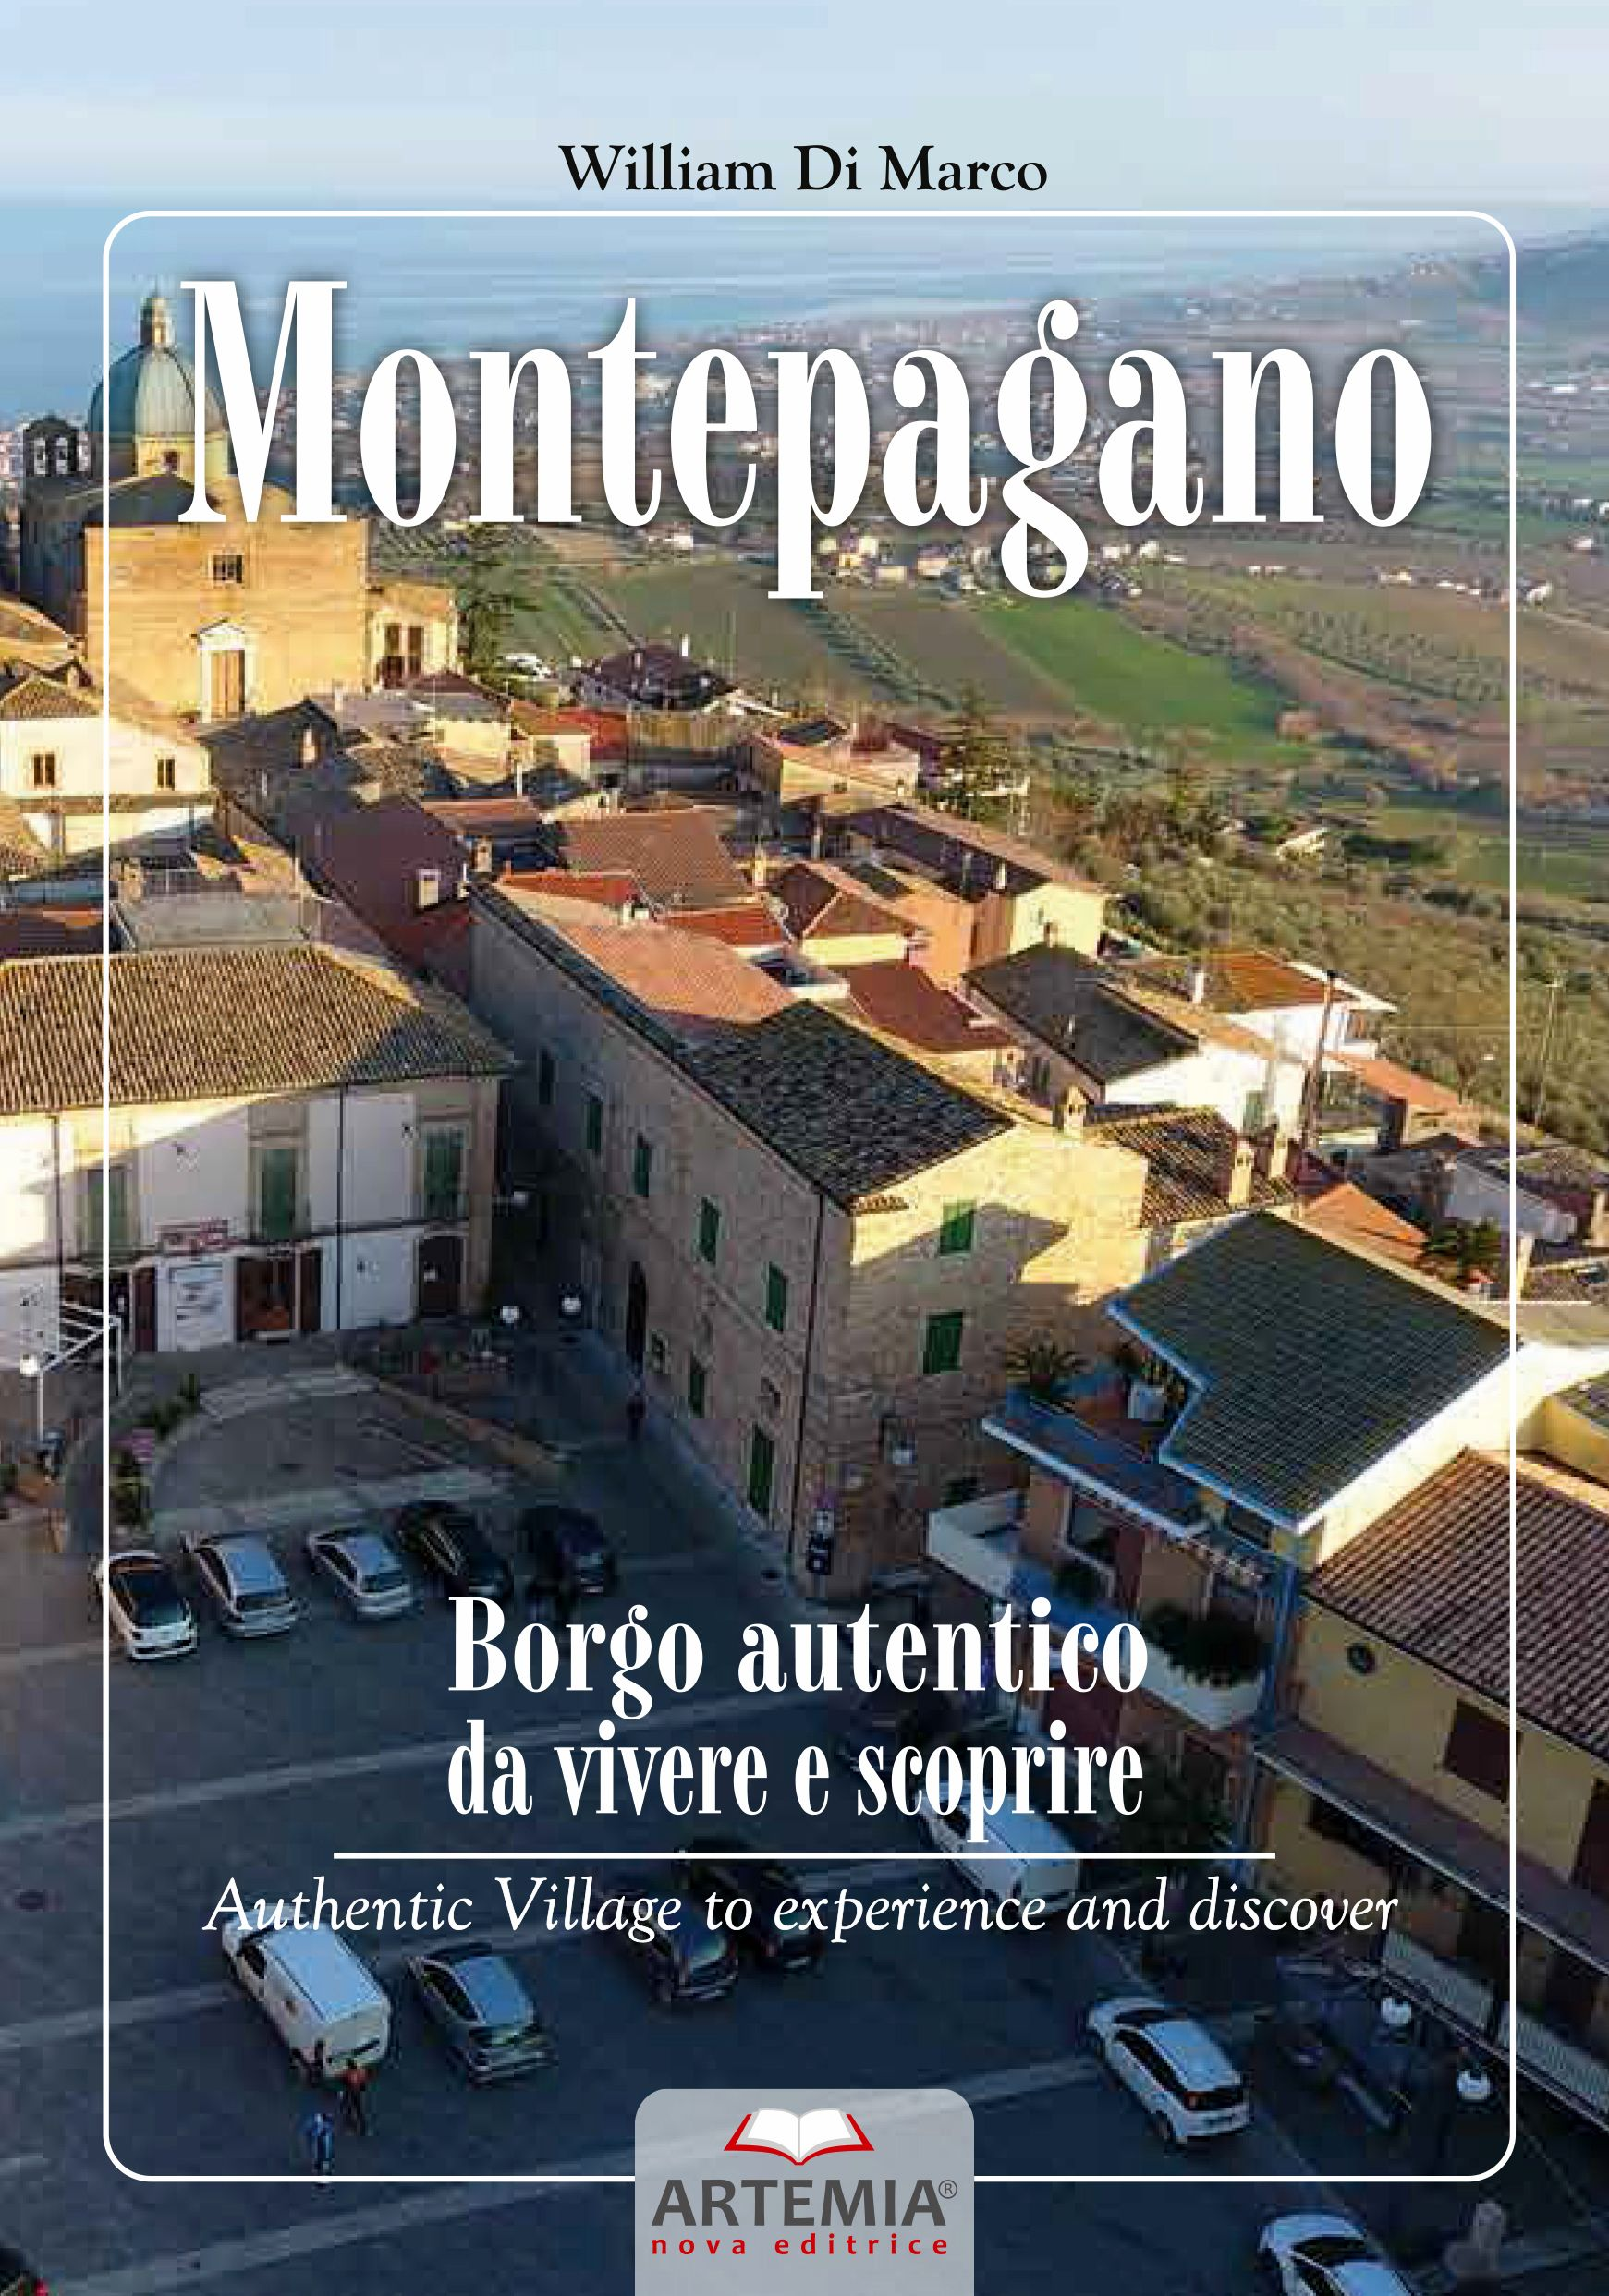 http://www.williamdimarco.it/files/022 - Montepagano.jpg